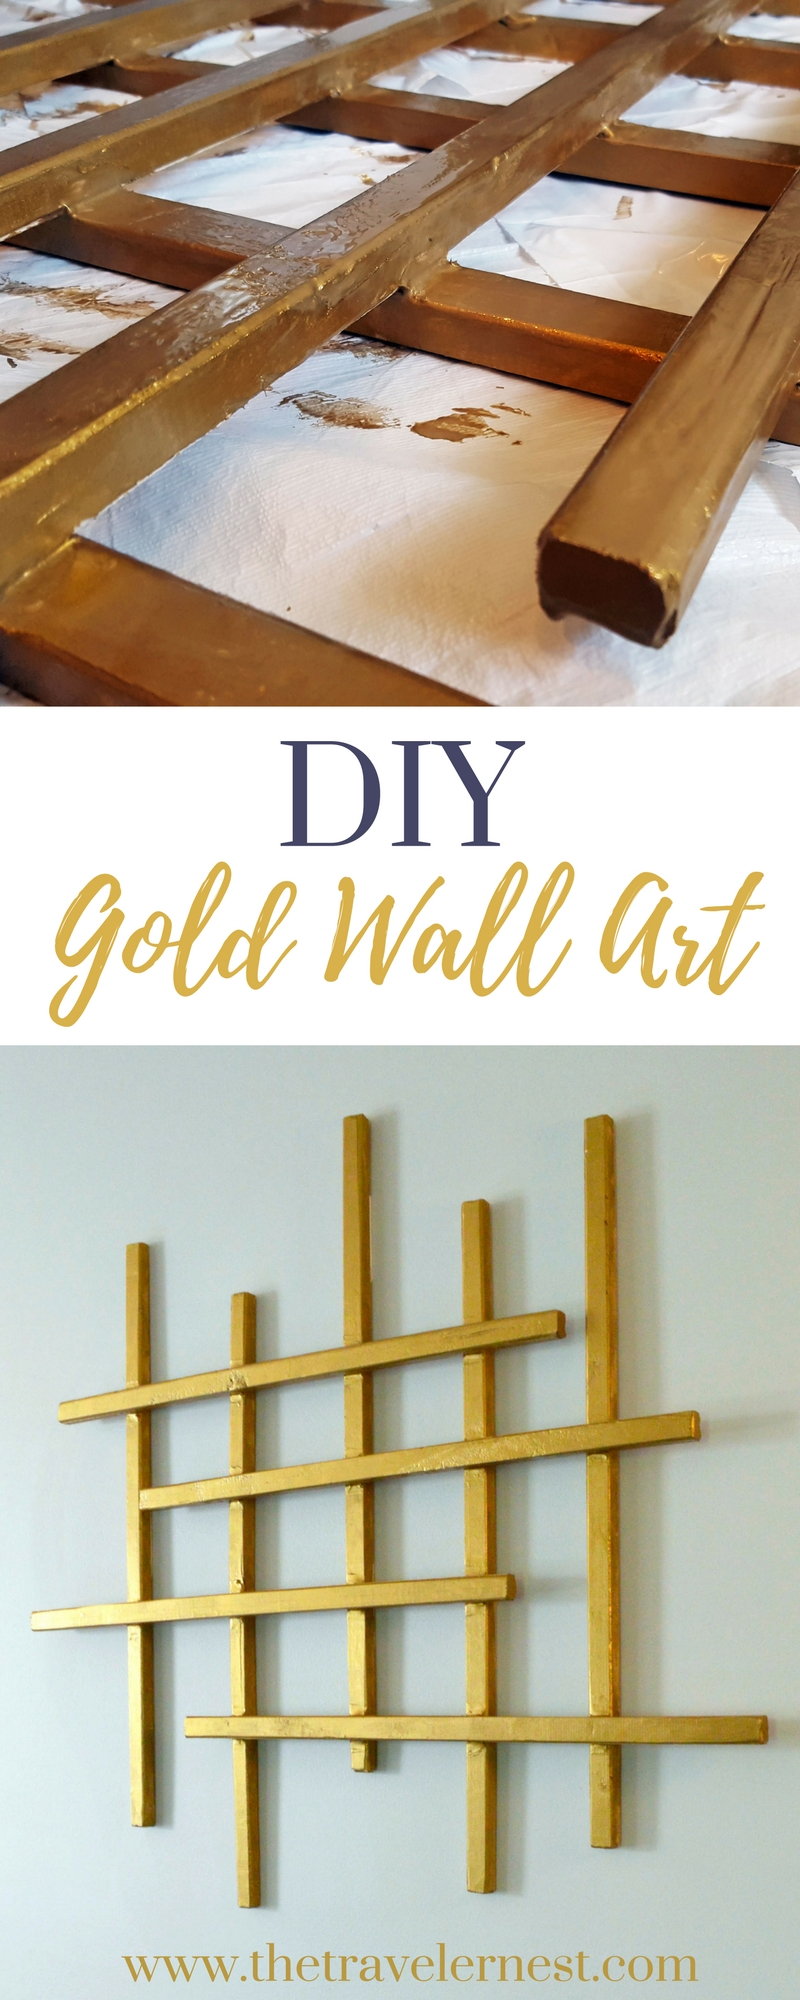 DIY: Gold Wall Art